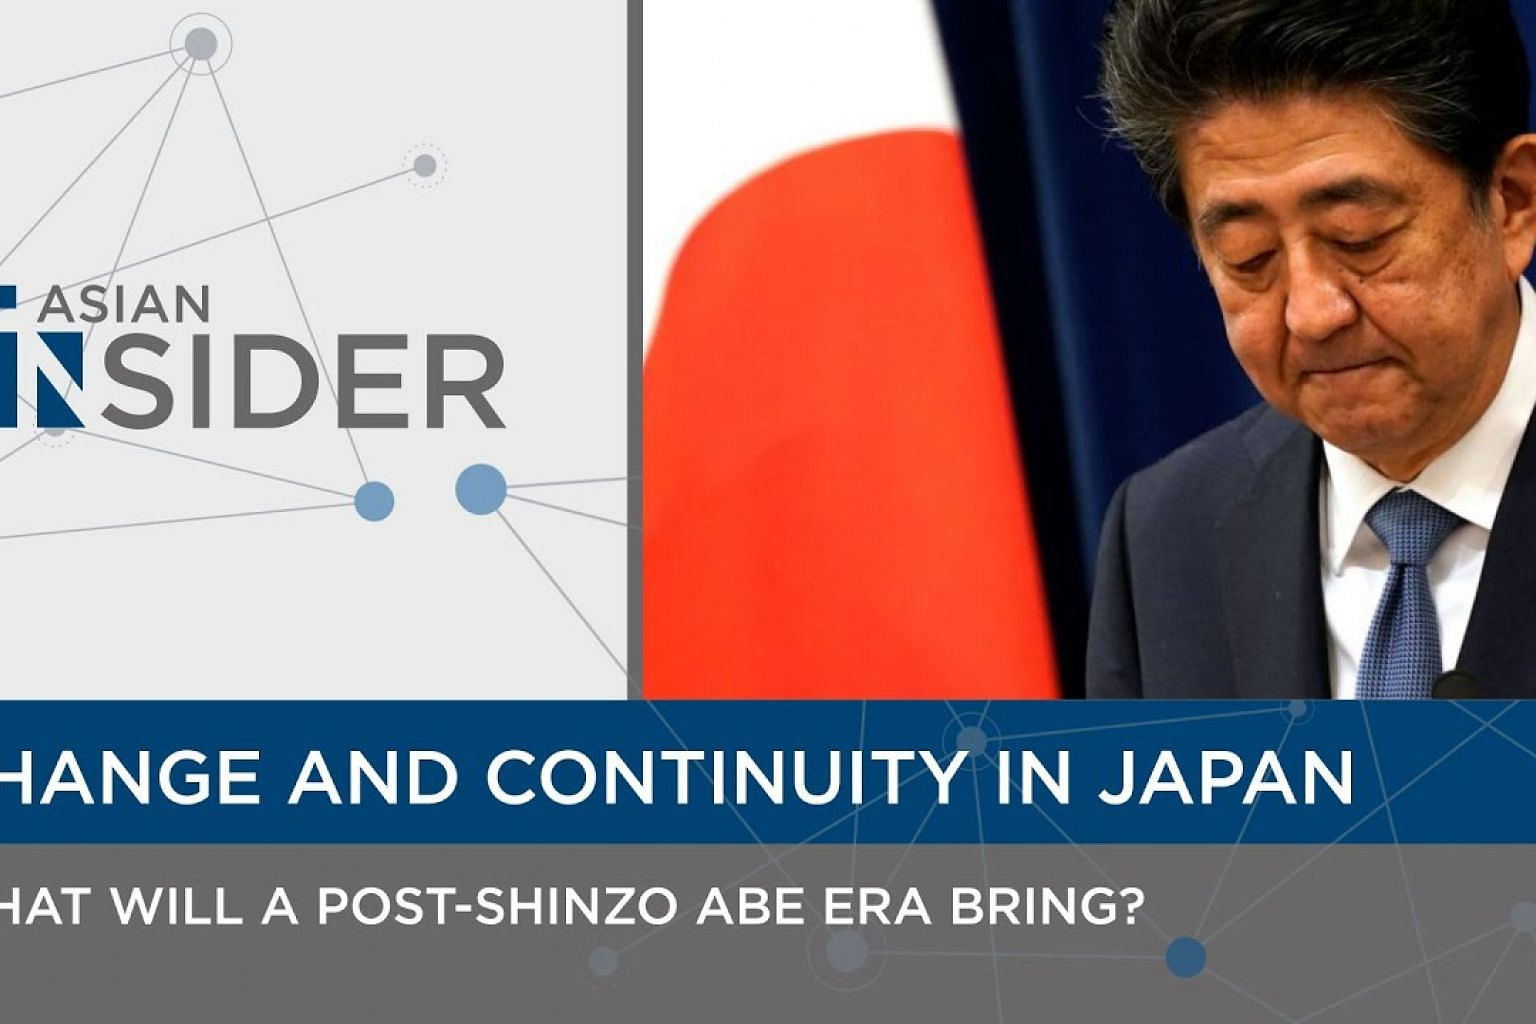 Change and Continuity in Japan: What will a post-Shinzo Abe era bring? | Asian Insider EP38